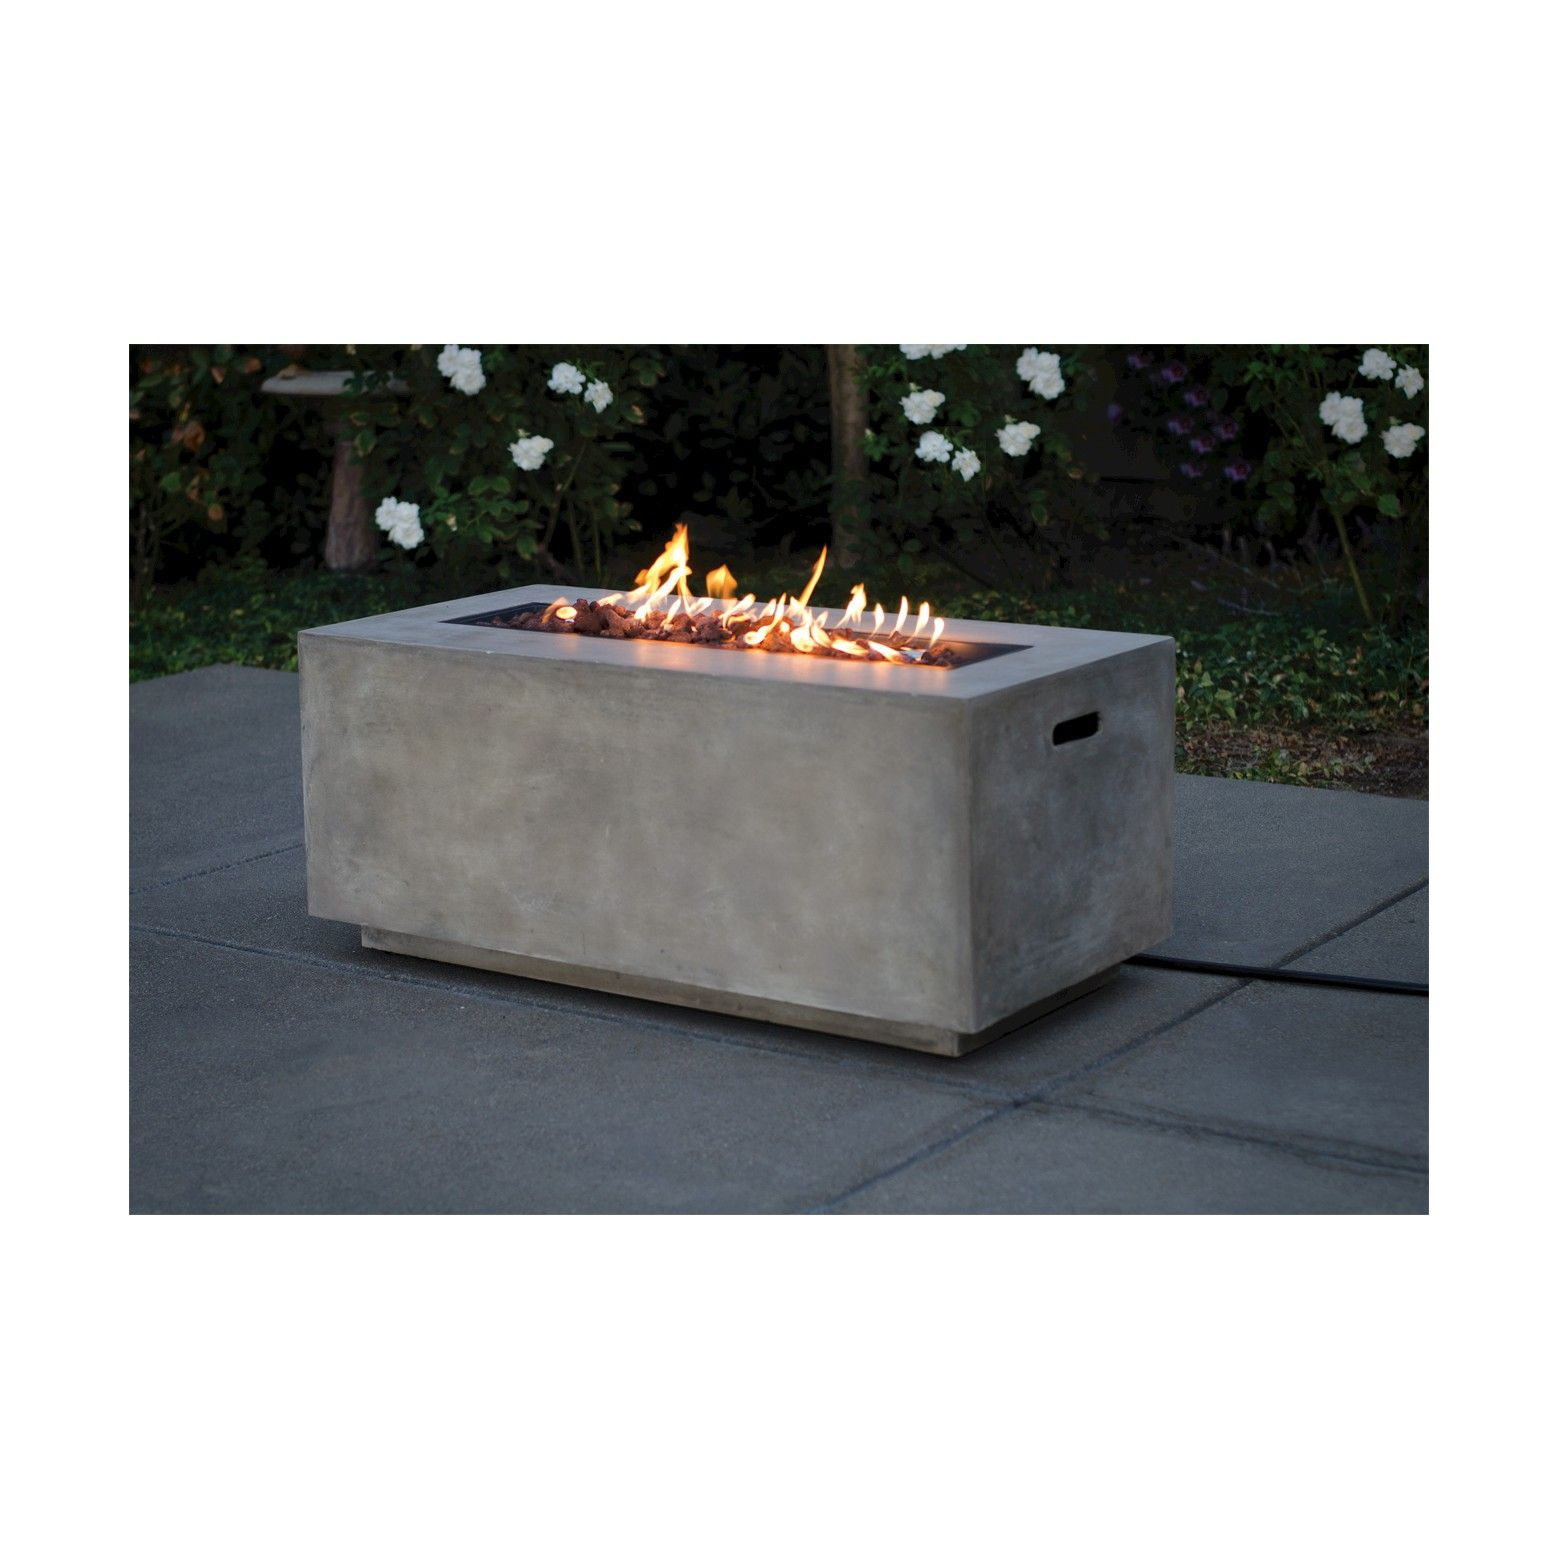 Pipestone 42 Long Rectangle Lp Gas Fire Table Concrete Gray Project 62 Target Fire Pit Gas Fire Table Outdoor Fire Pit